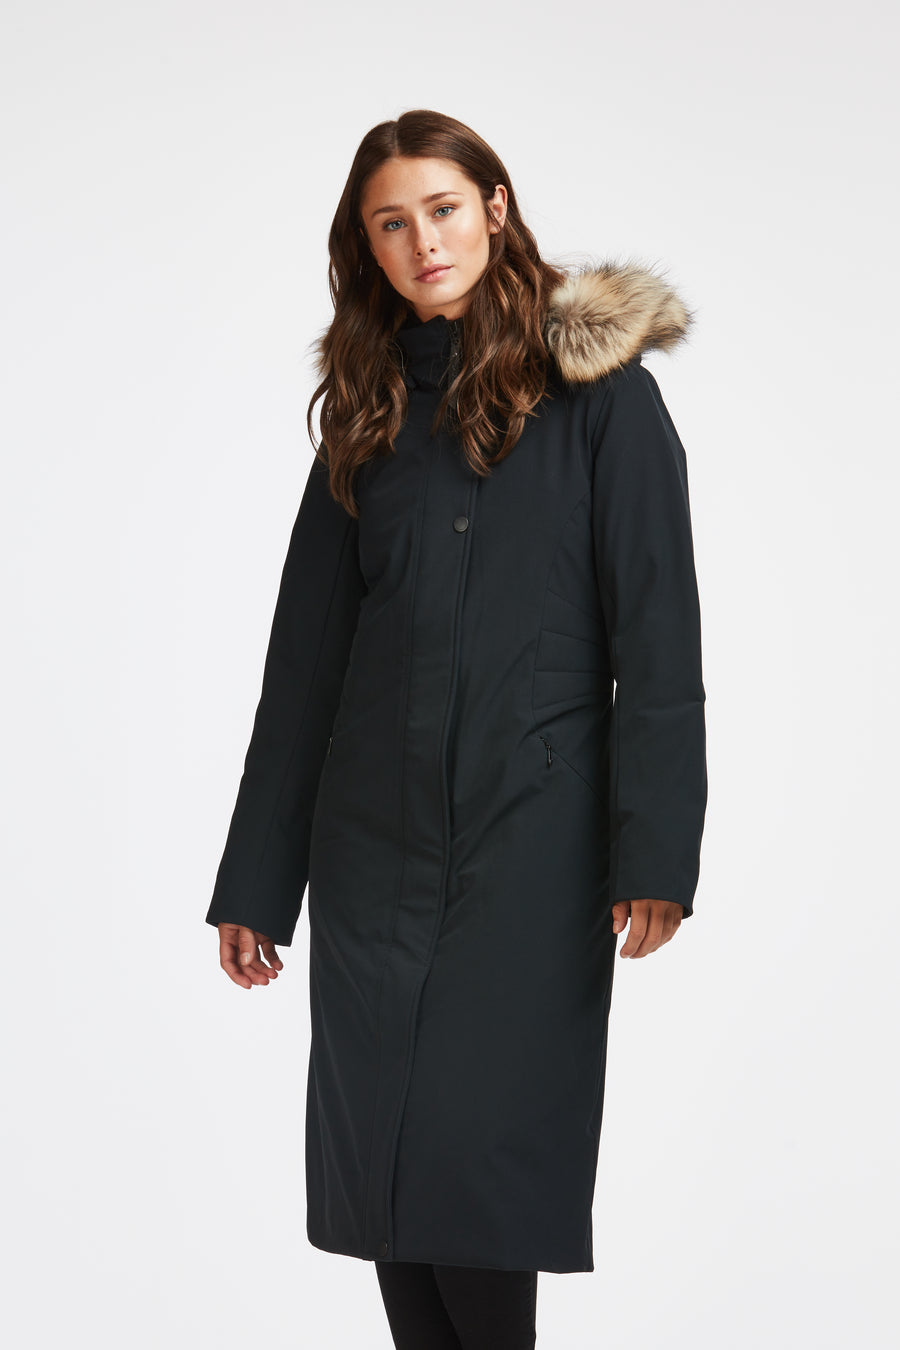 Manteau d'hiver BALI ANCIEN - AK10025 || BALI OLD winter coat - AK10025